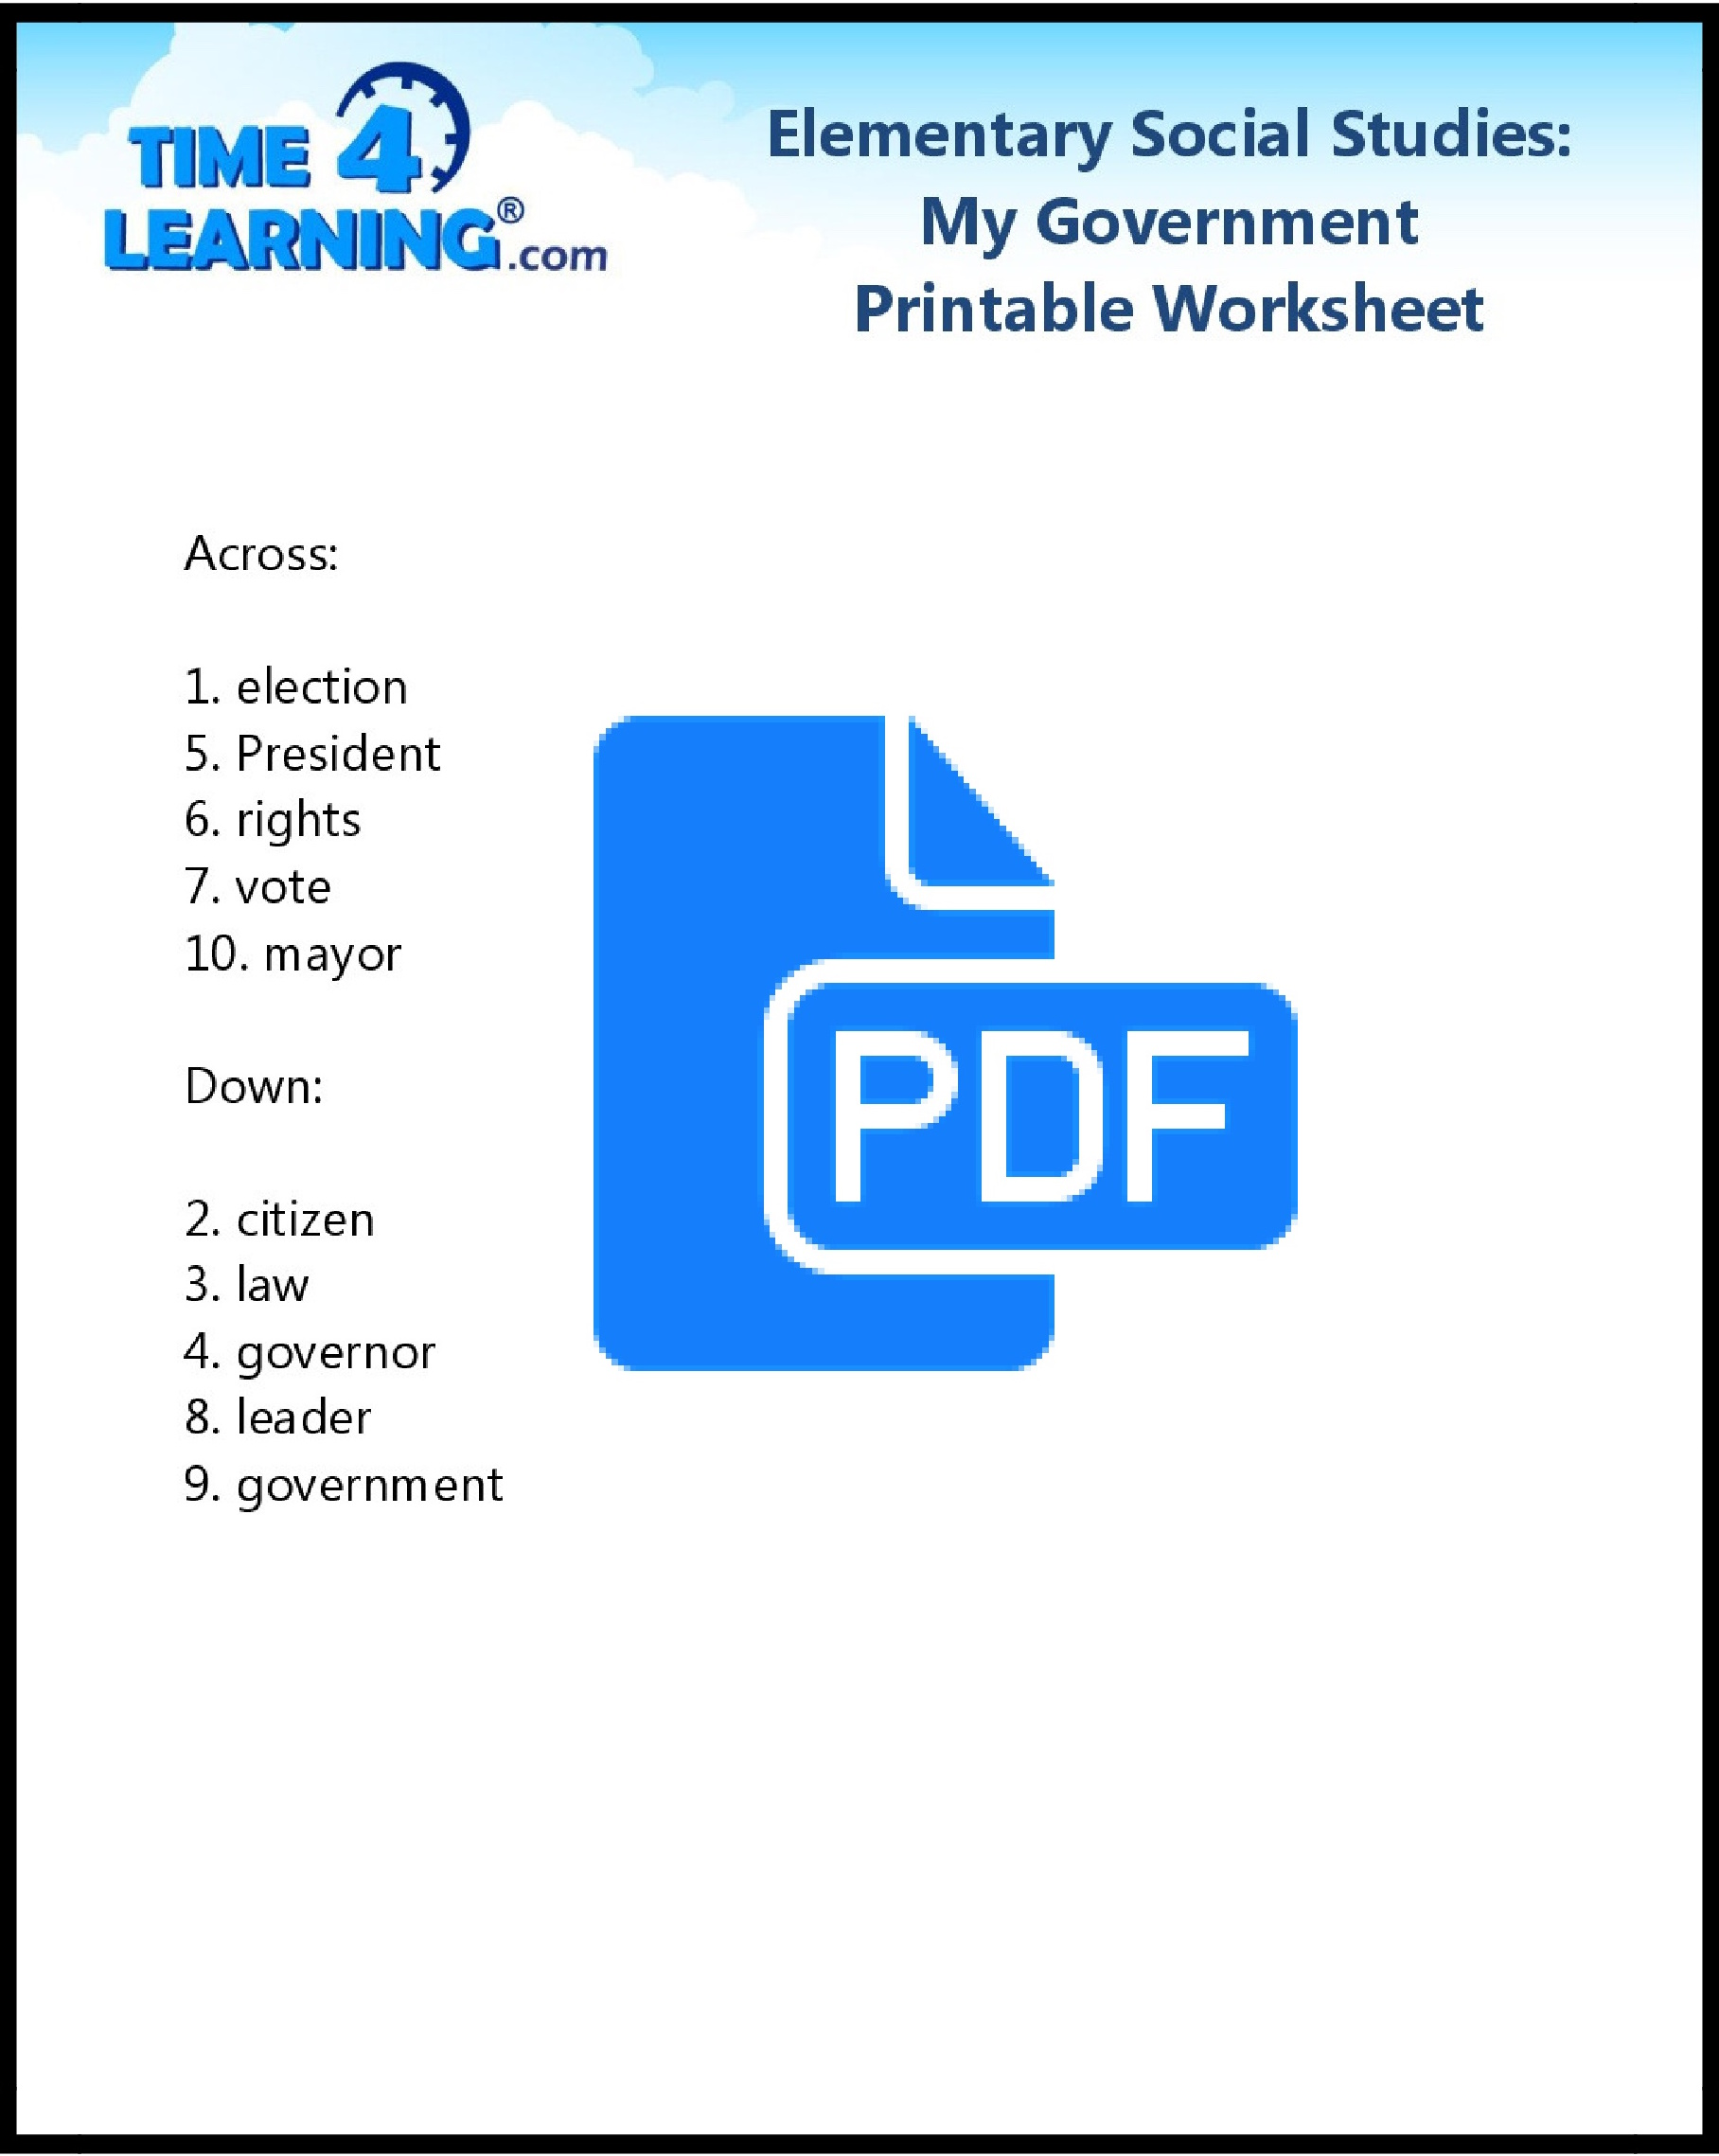 Free Printable Elementary Social Studies Worksheet Time4learning